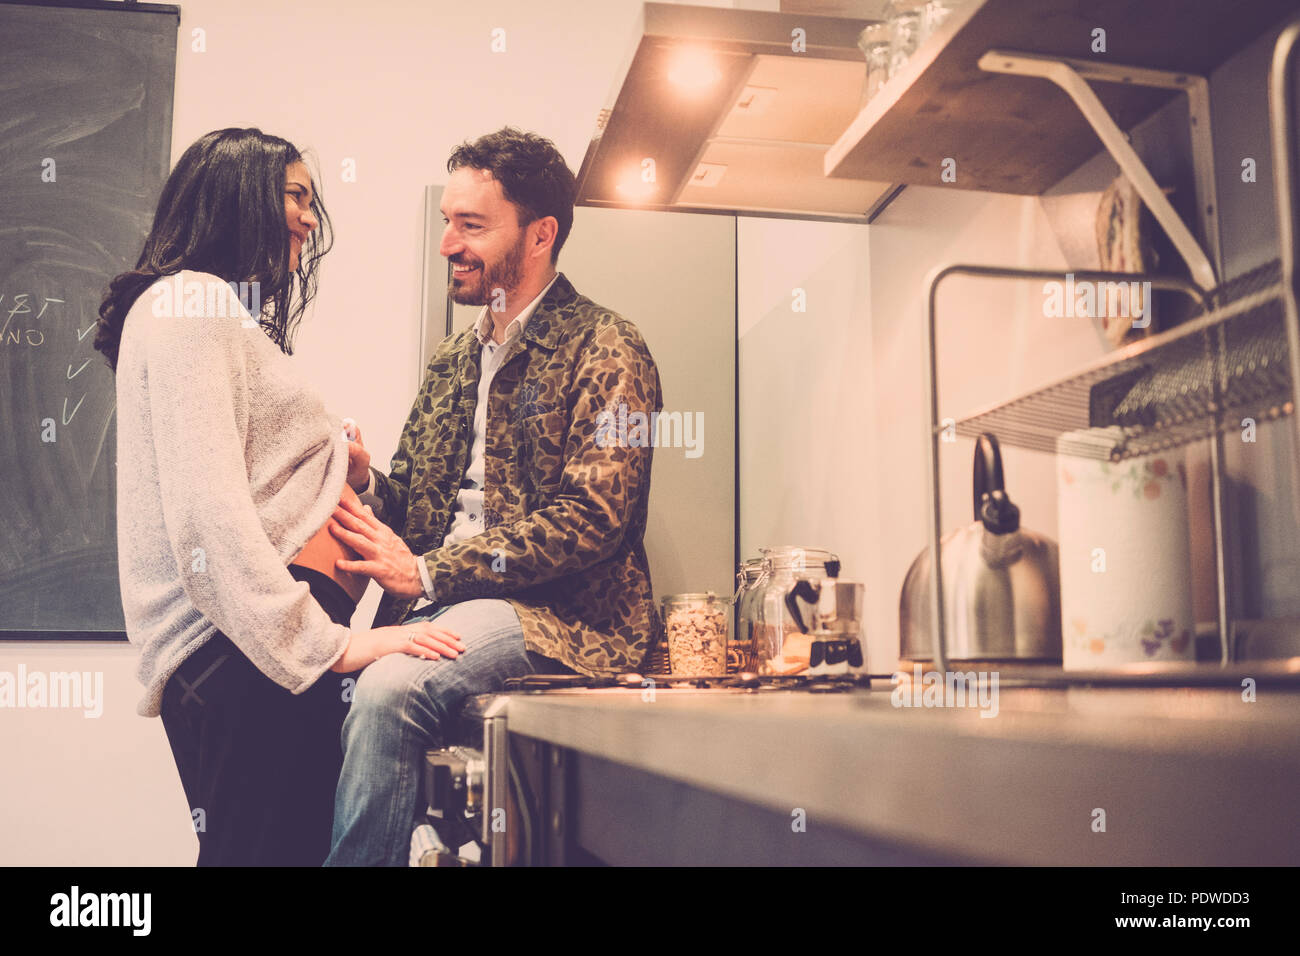 couple of man and woman caucasian happy people smile and have fun with the pregnant belly of the lady. smile and laugh waiting the new son . love work - Stock Image